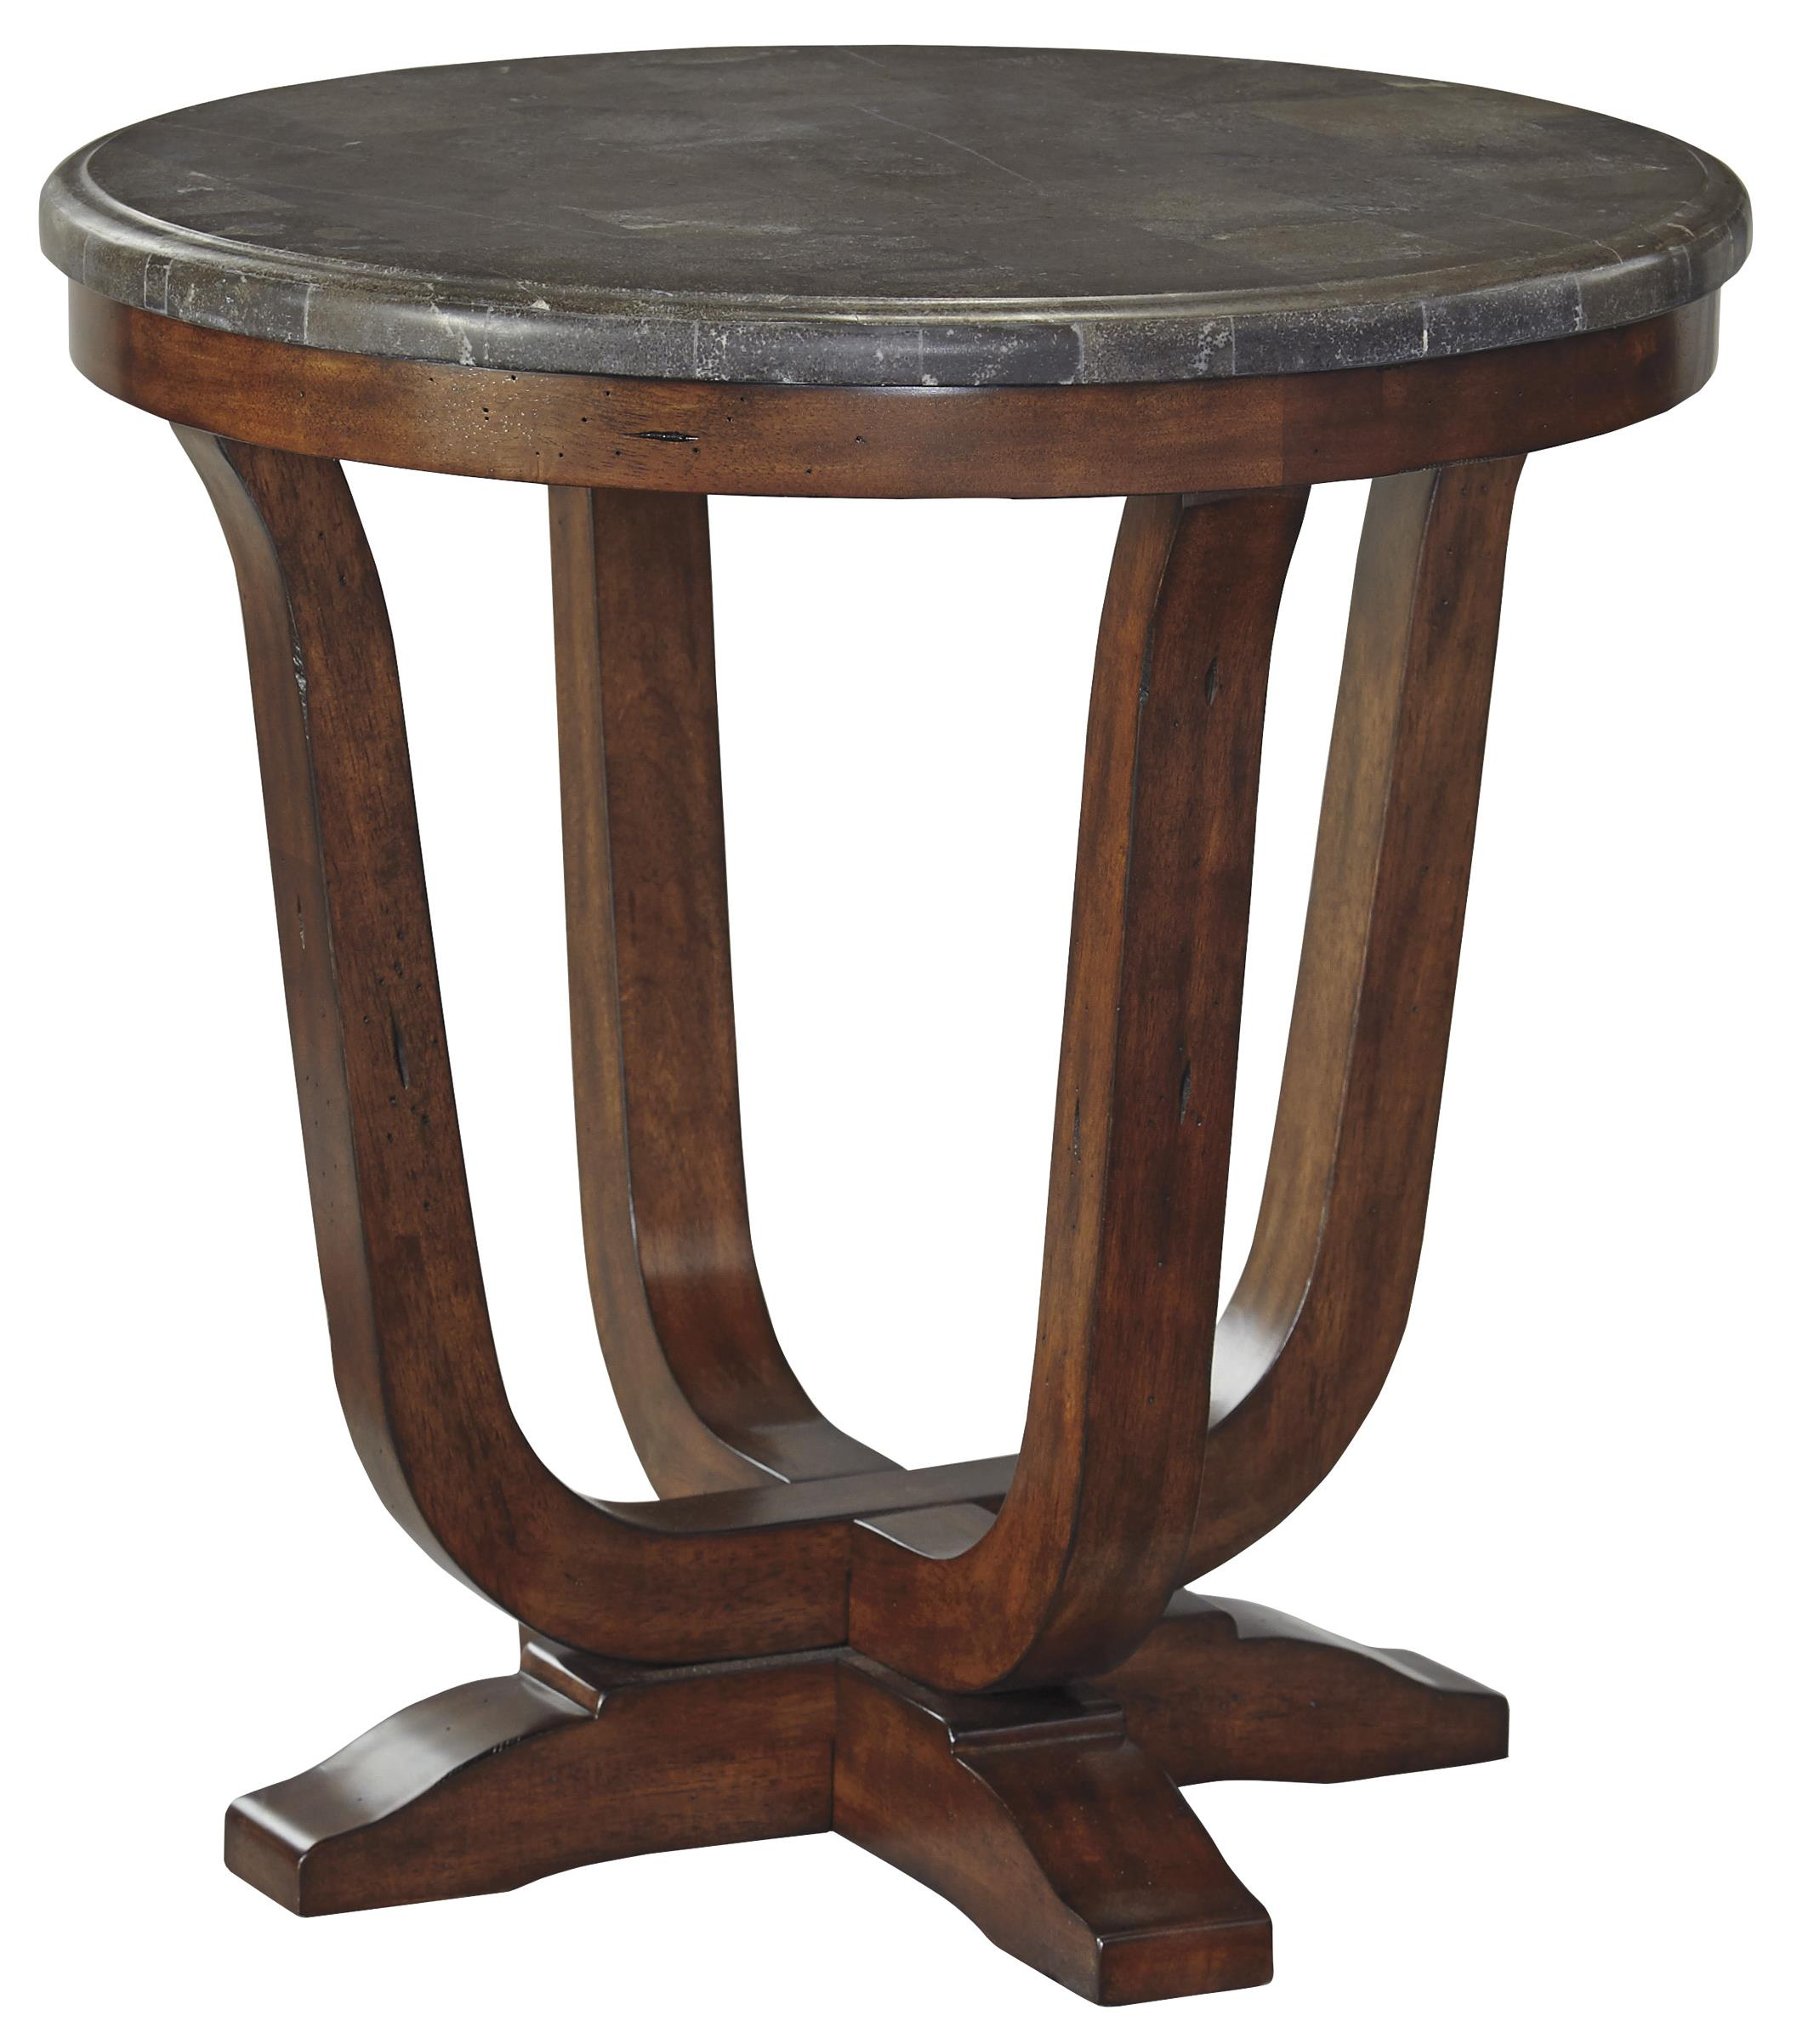 Signature Design by Ashley Balinder Round End Table - Item Number: T908-6